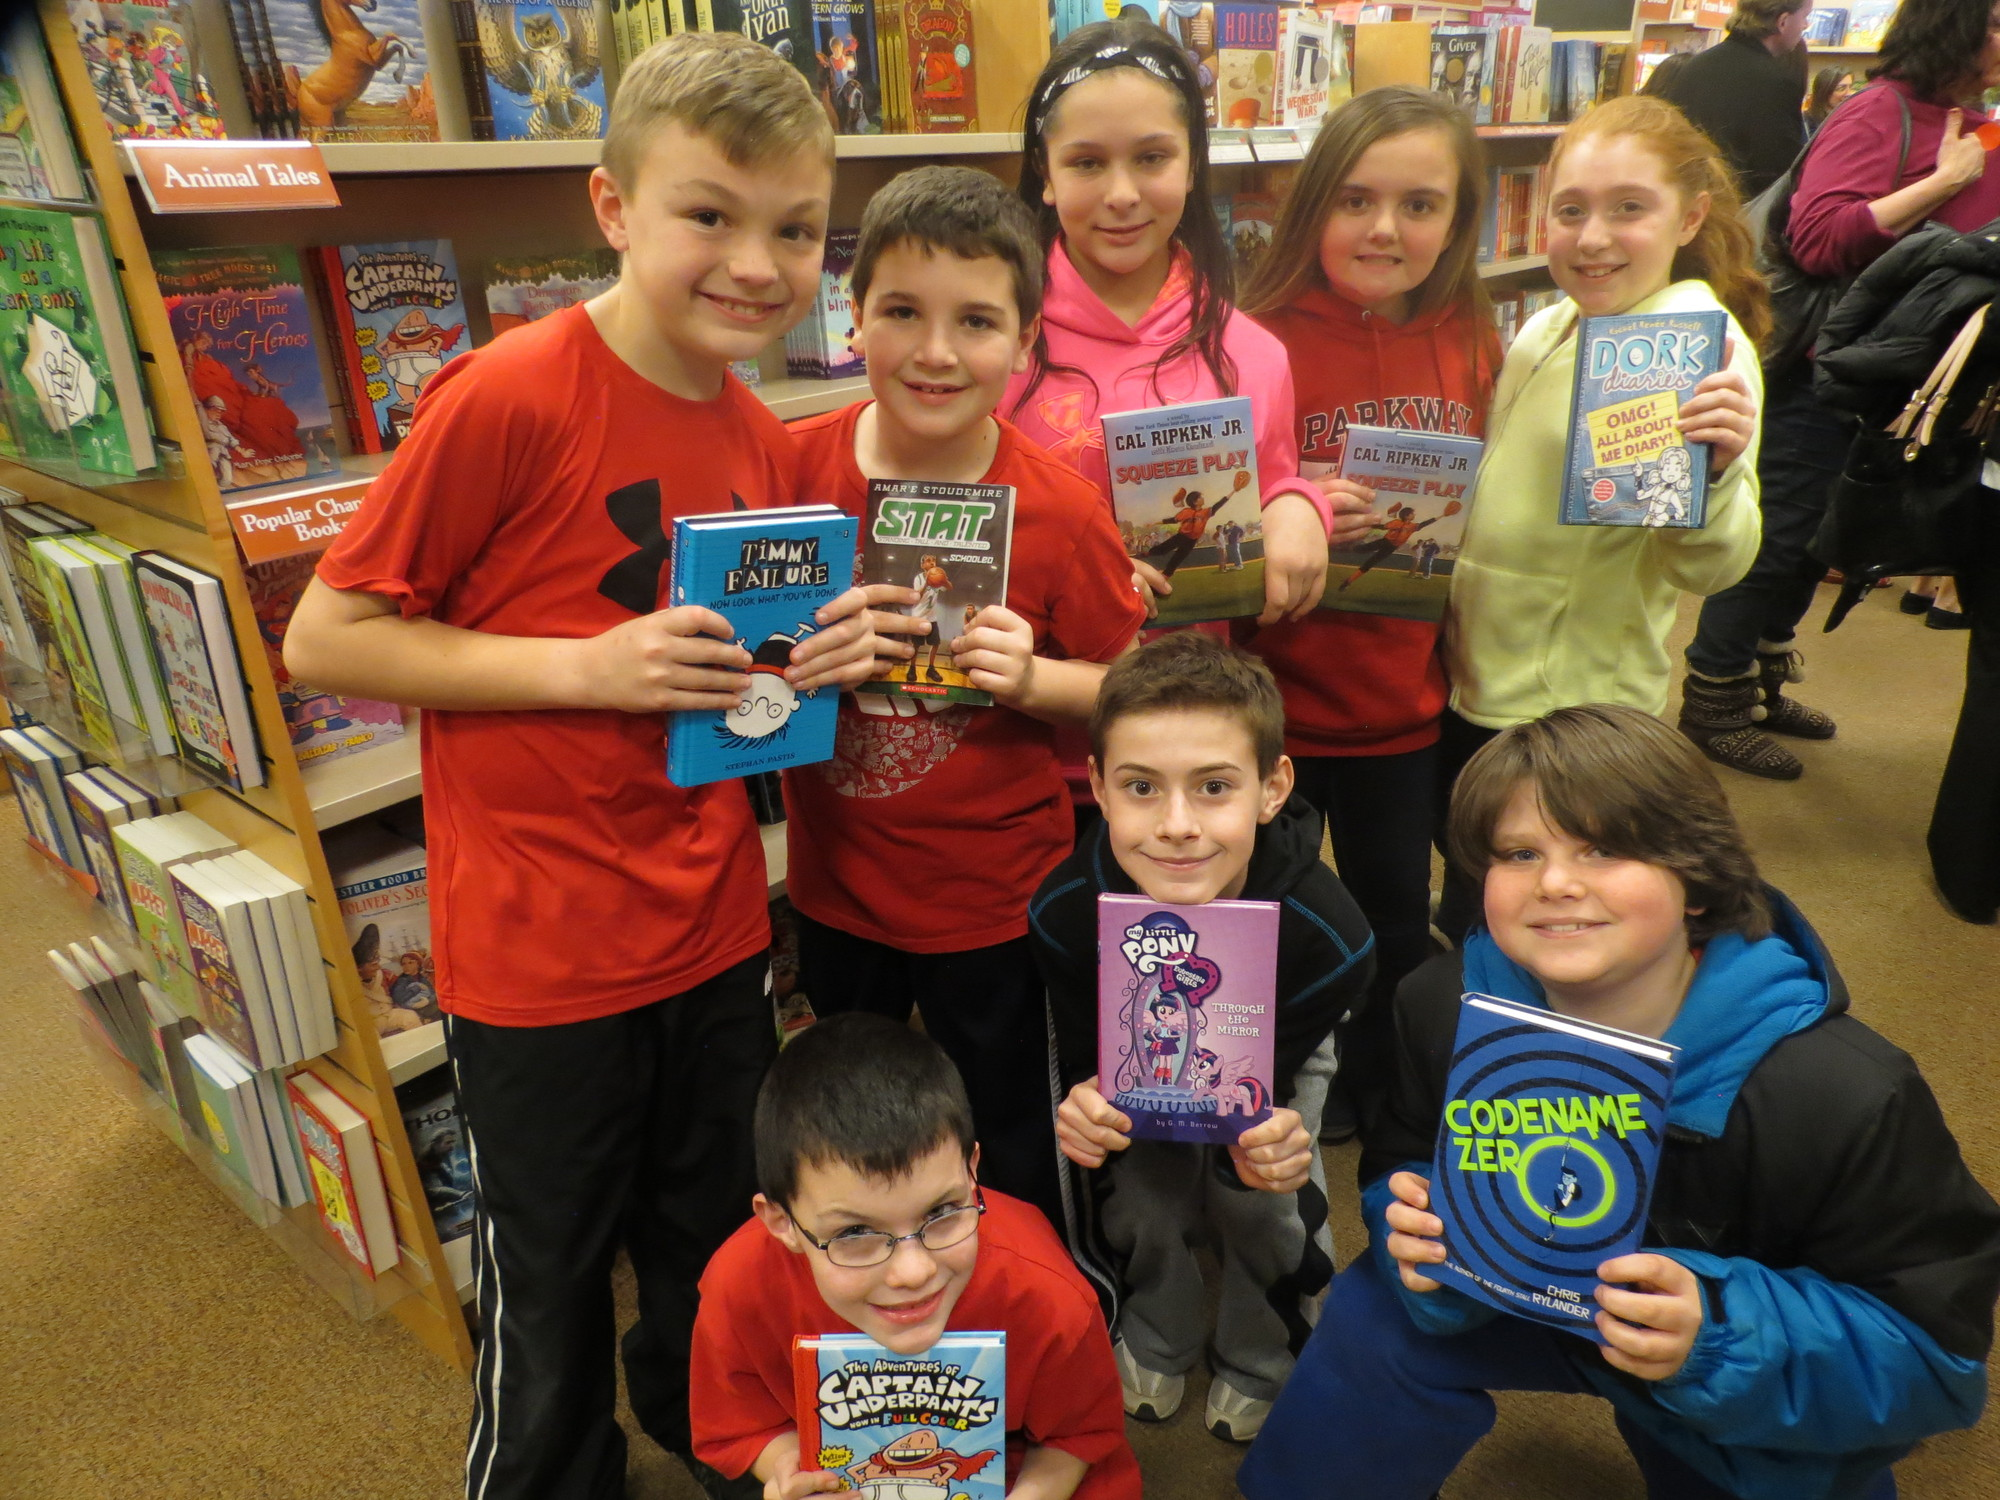 Parkway Elementary School students left Barnes and Noble in Carle Place with new books to read after attending Literacy Night earlier this month.